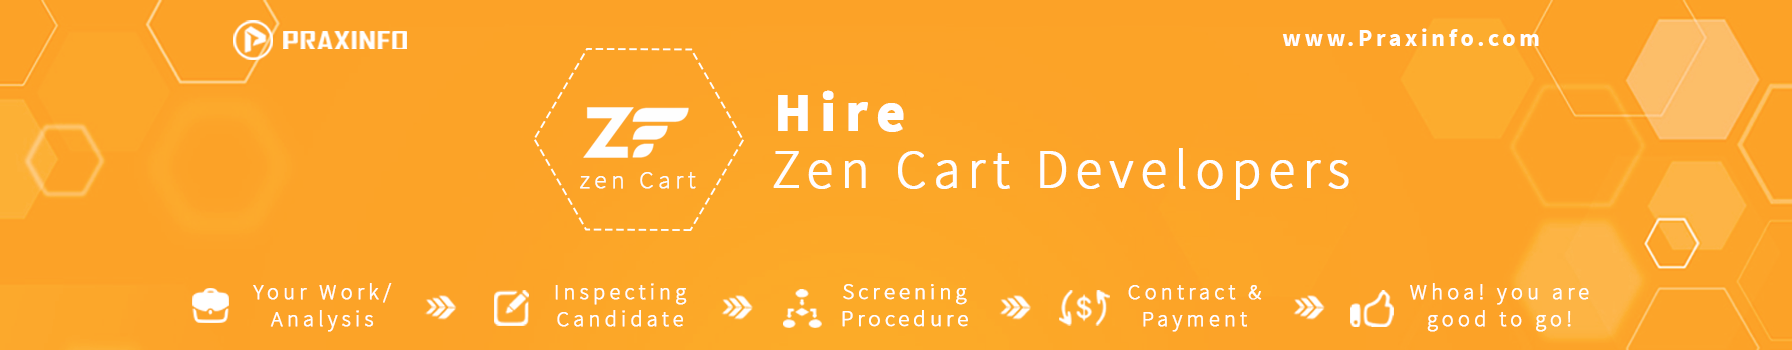 hire-ZenCart-developer.png